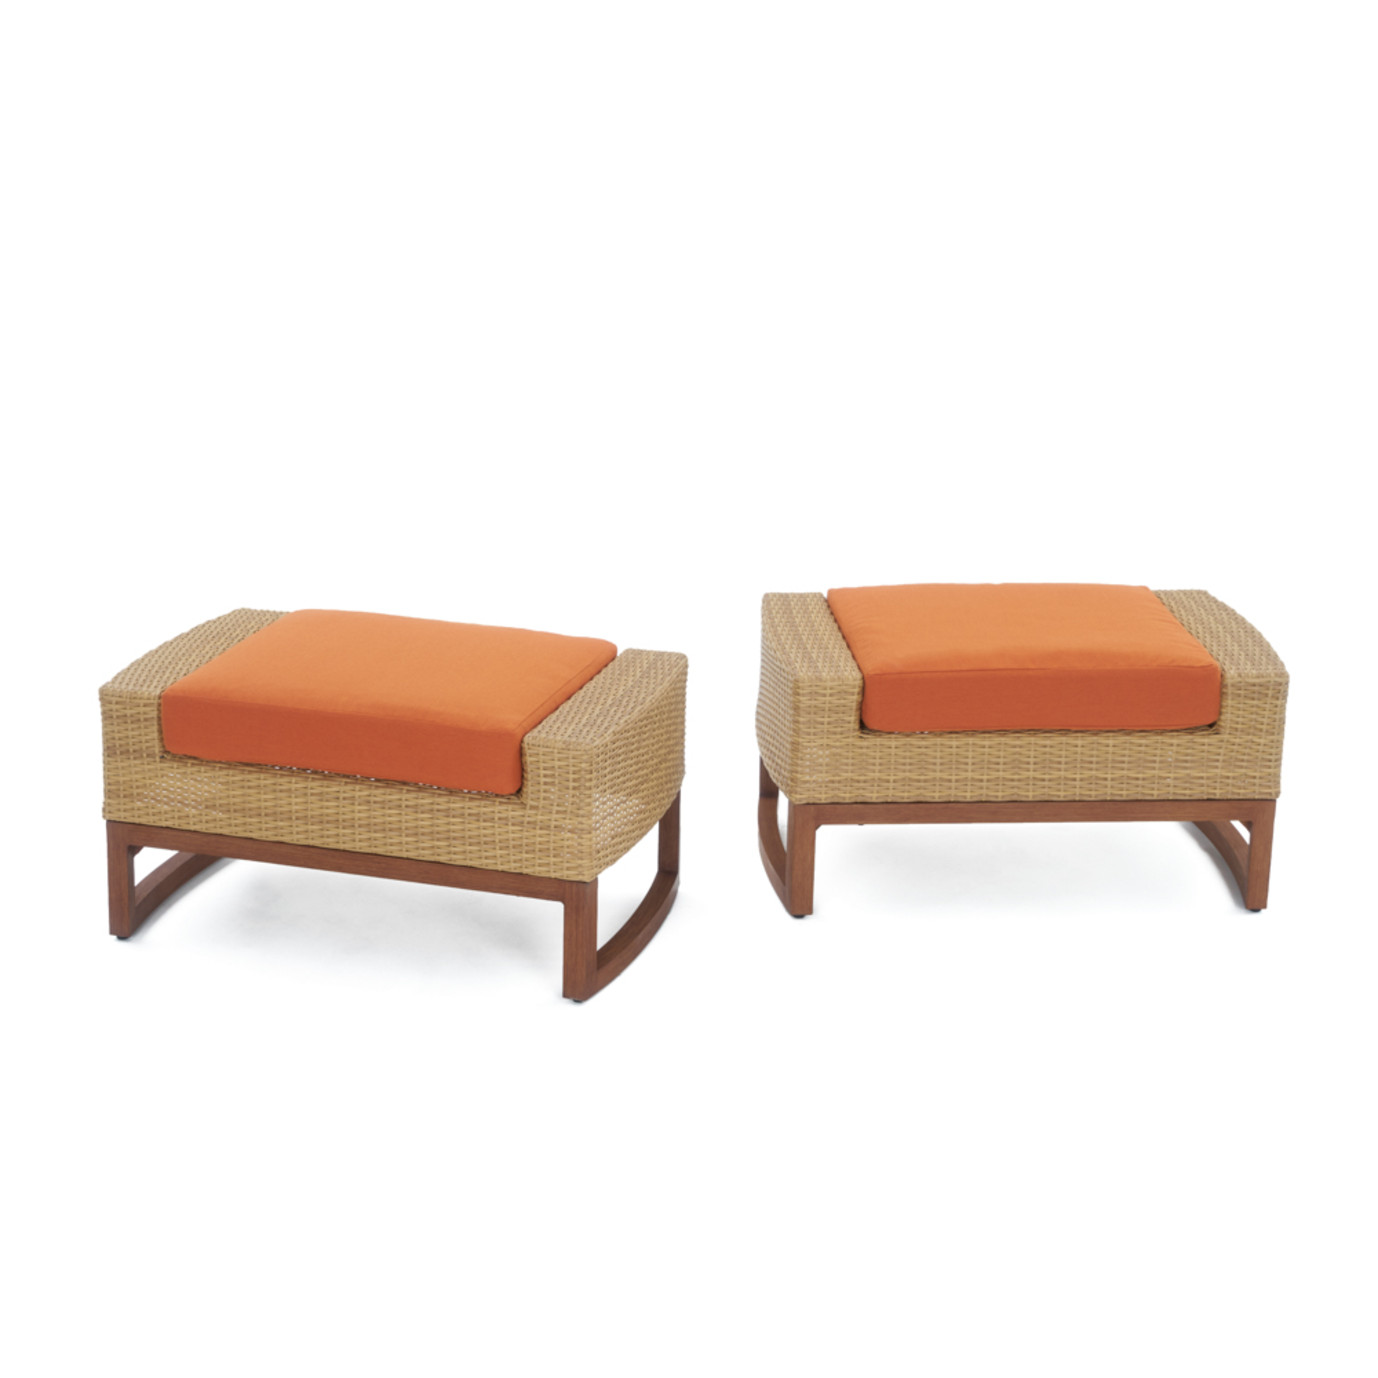 Mili™ 5pc Club Chair & Ottoman Set - Tikka Orange